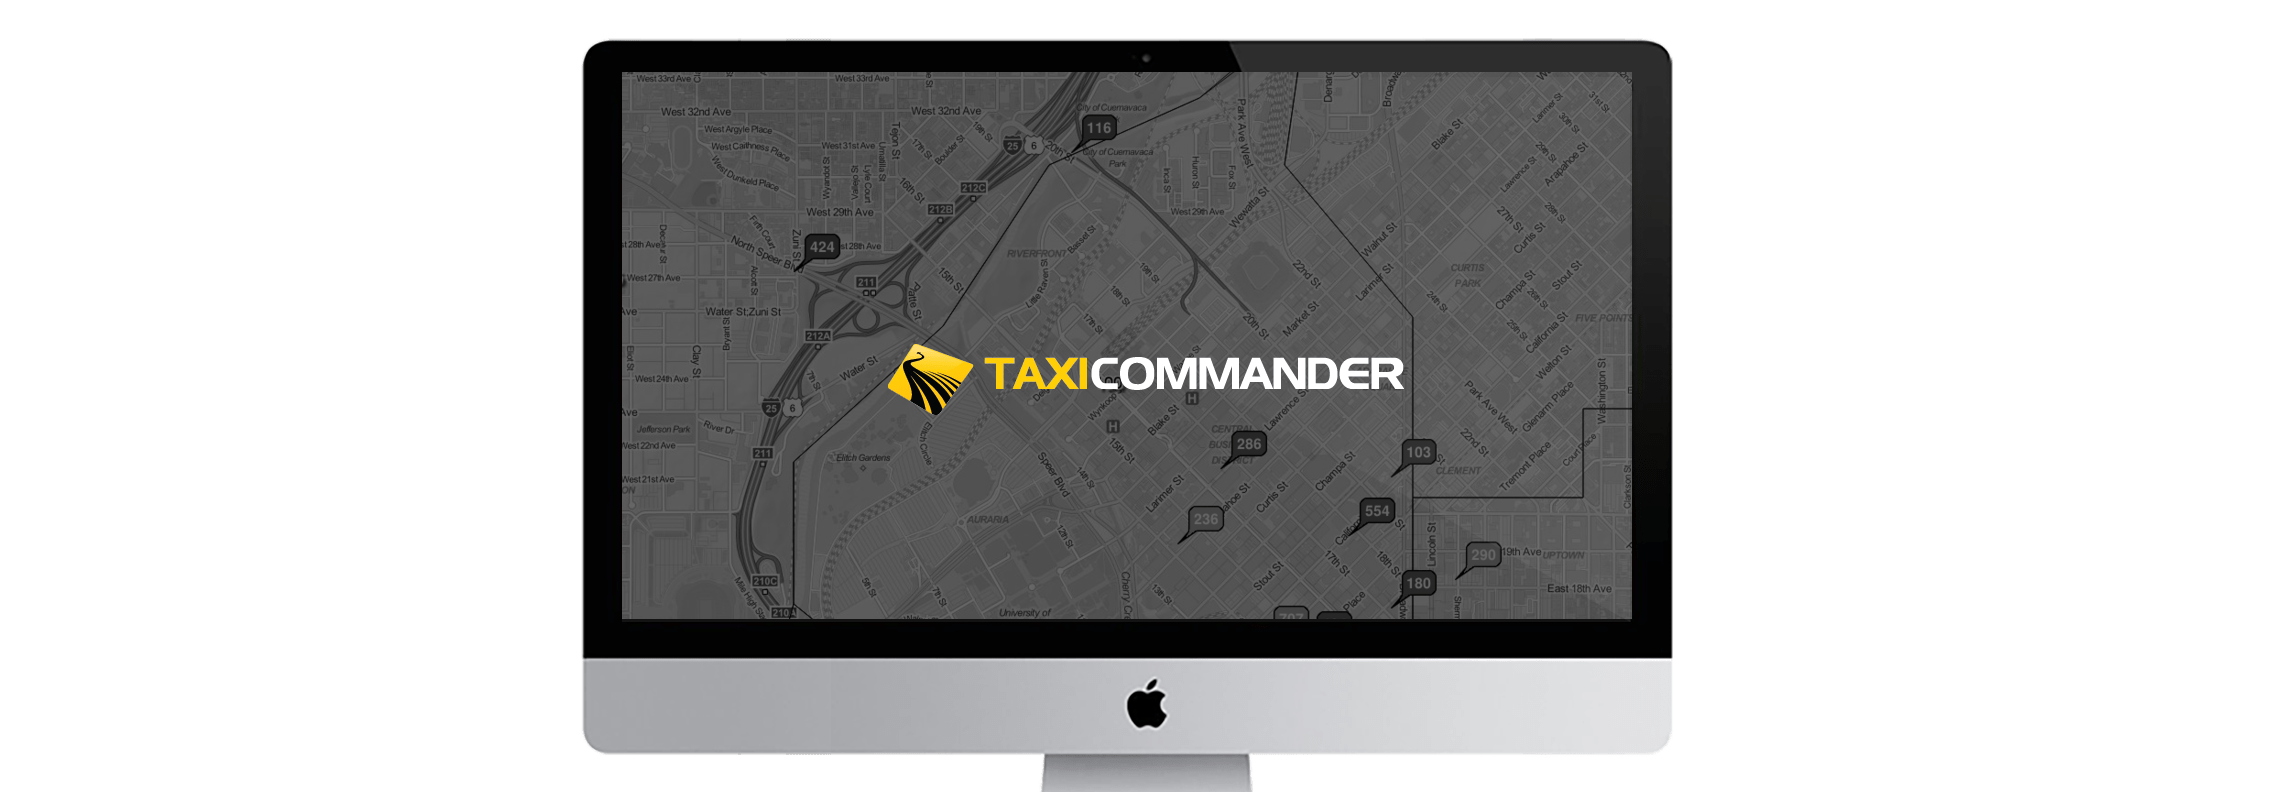 Taxi Commander Dispatch